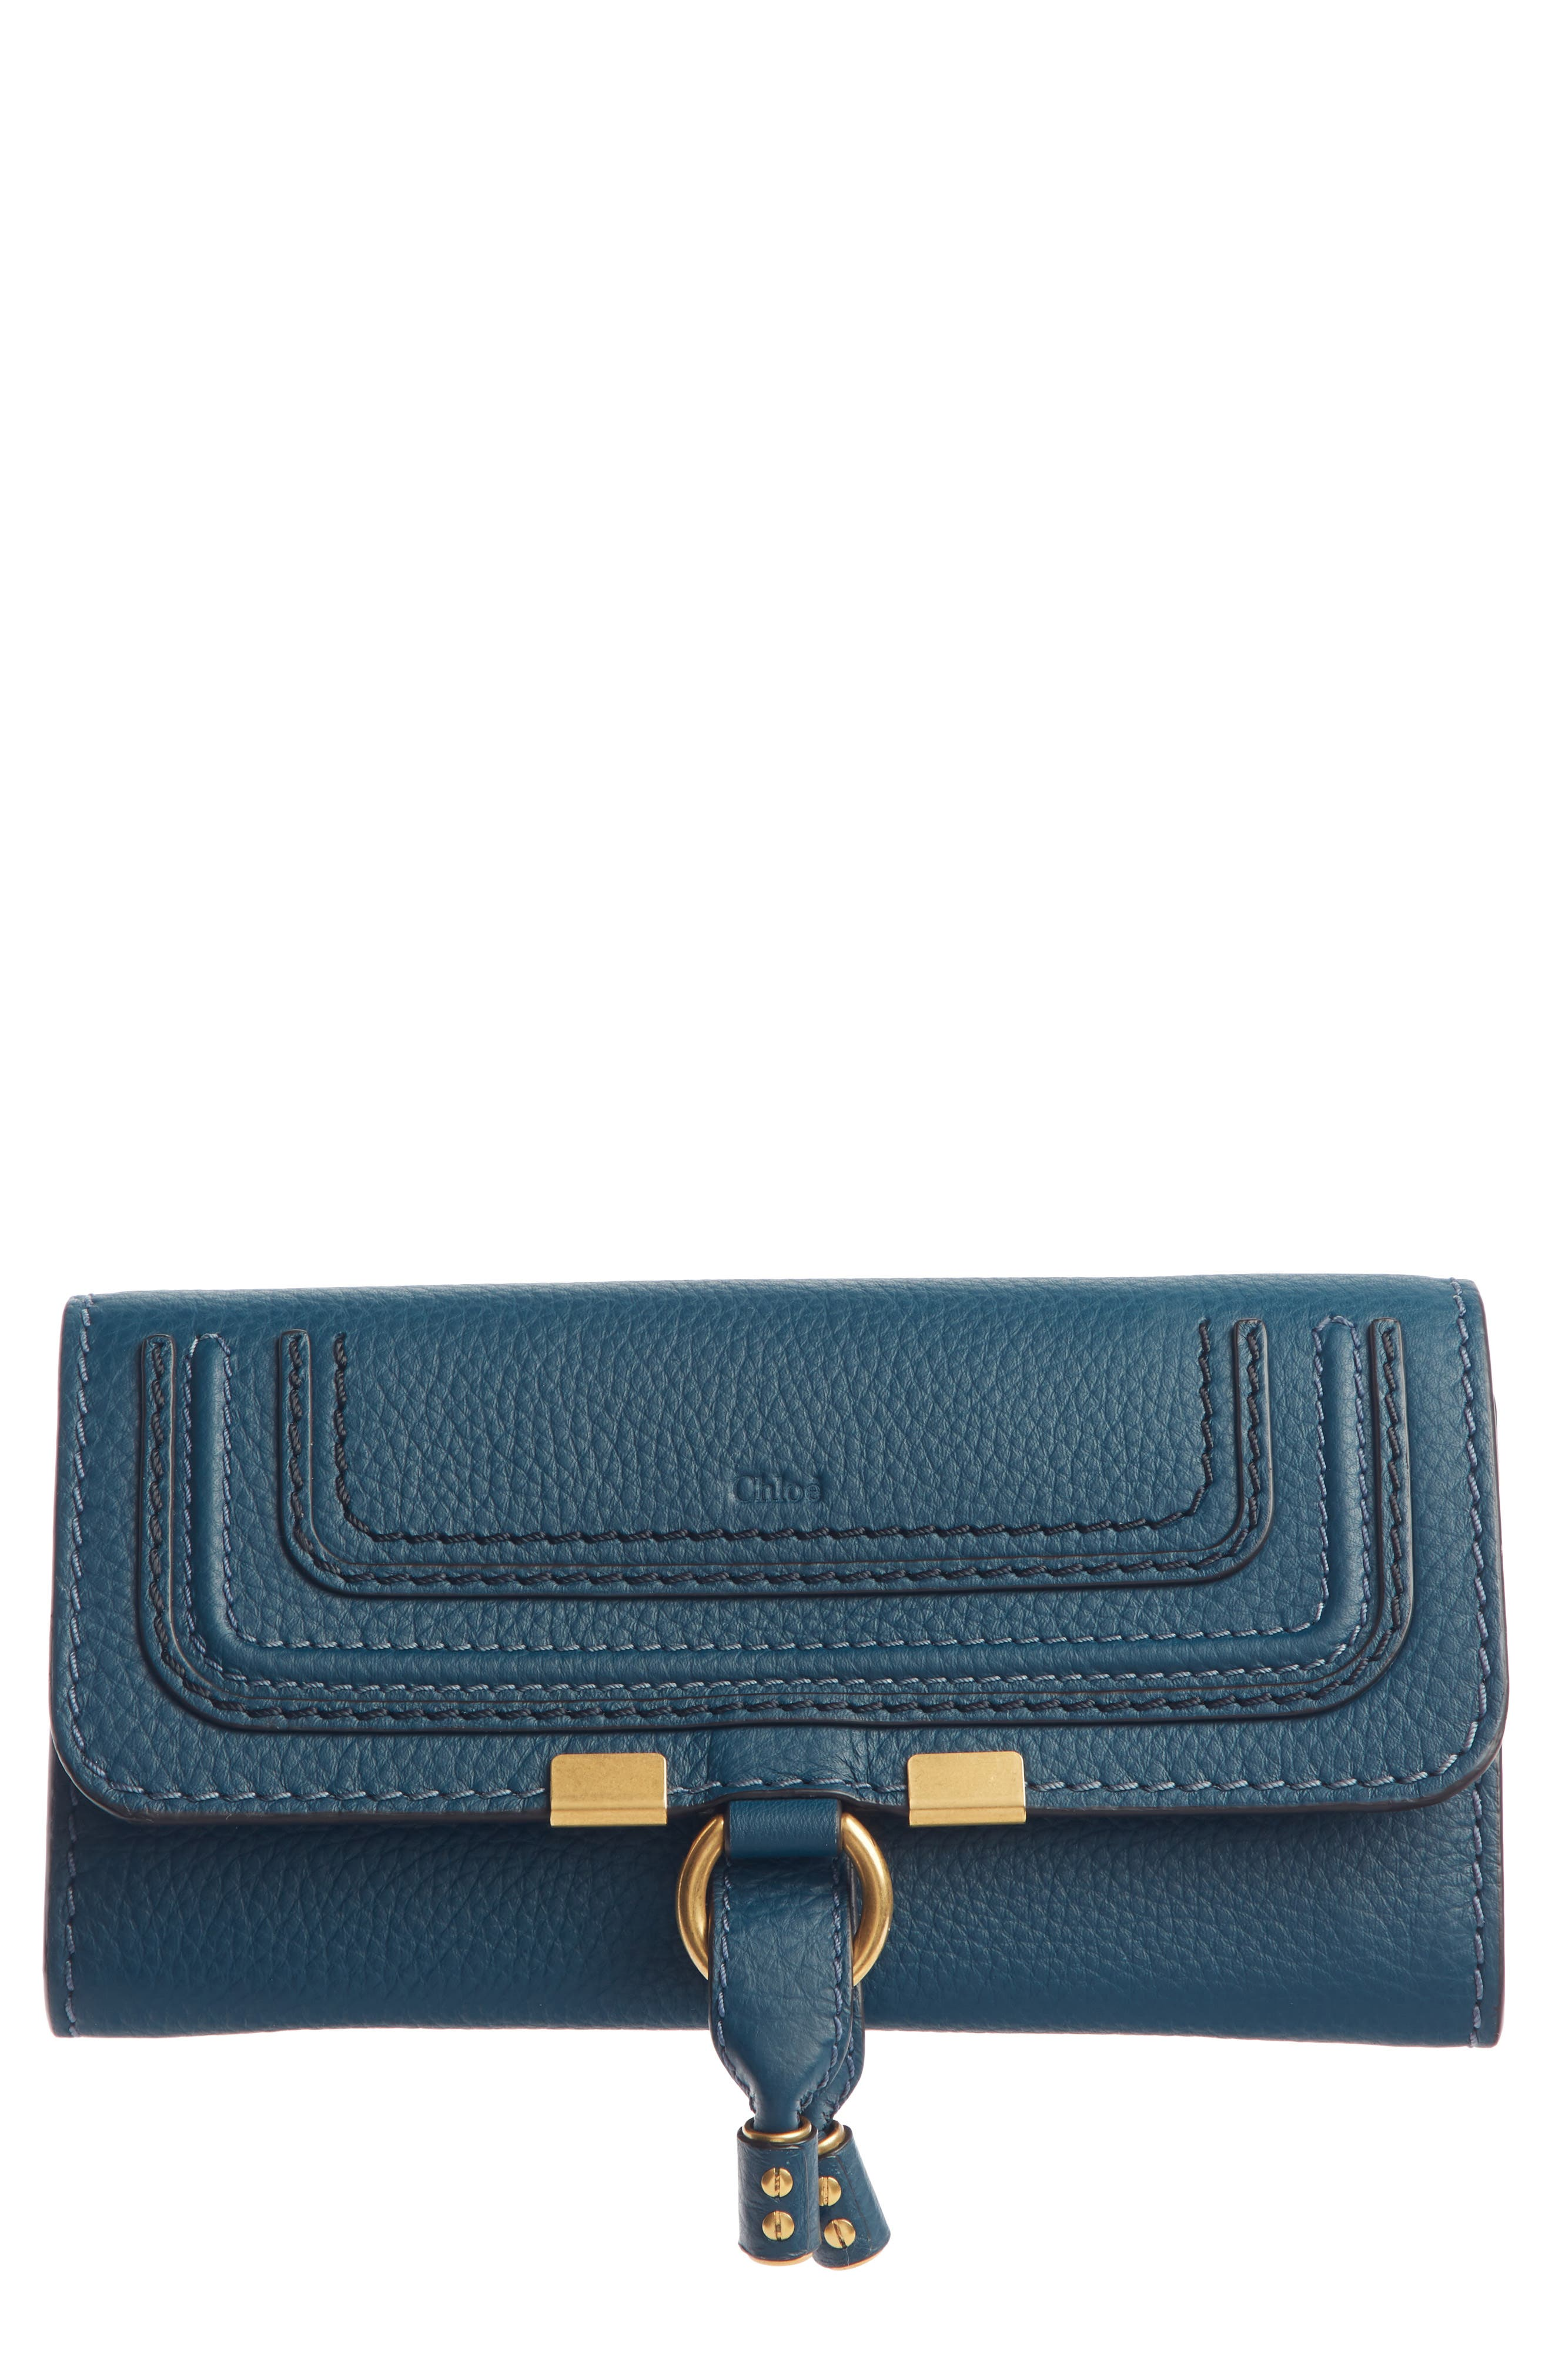 CHLOÉ, Marcie - Long Leather Flap Wallet, Main thumbnail 1, color, NAVY INK